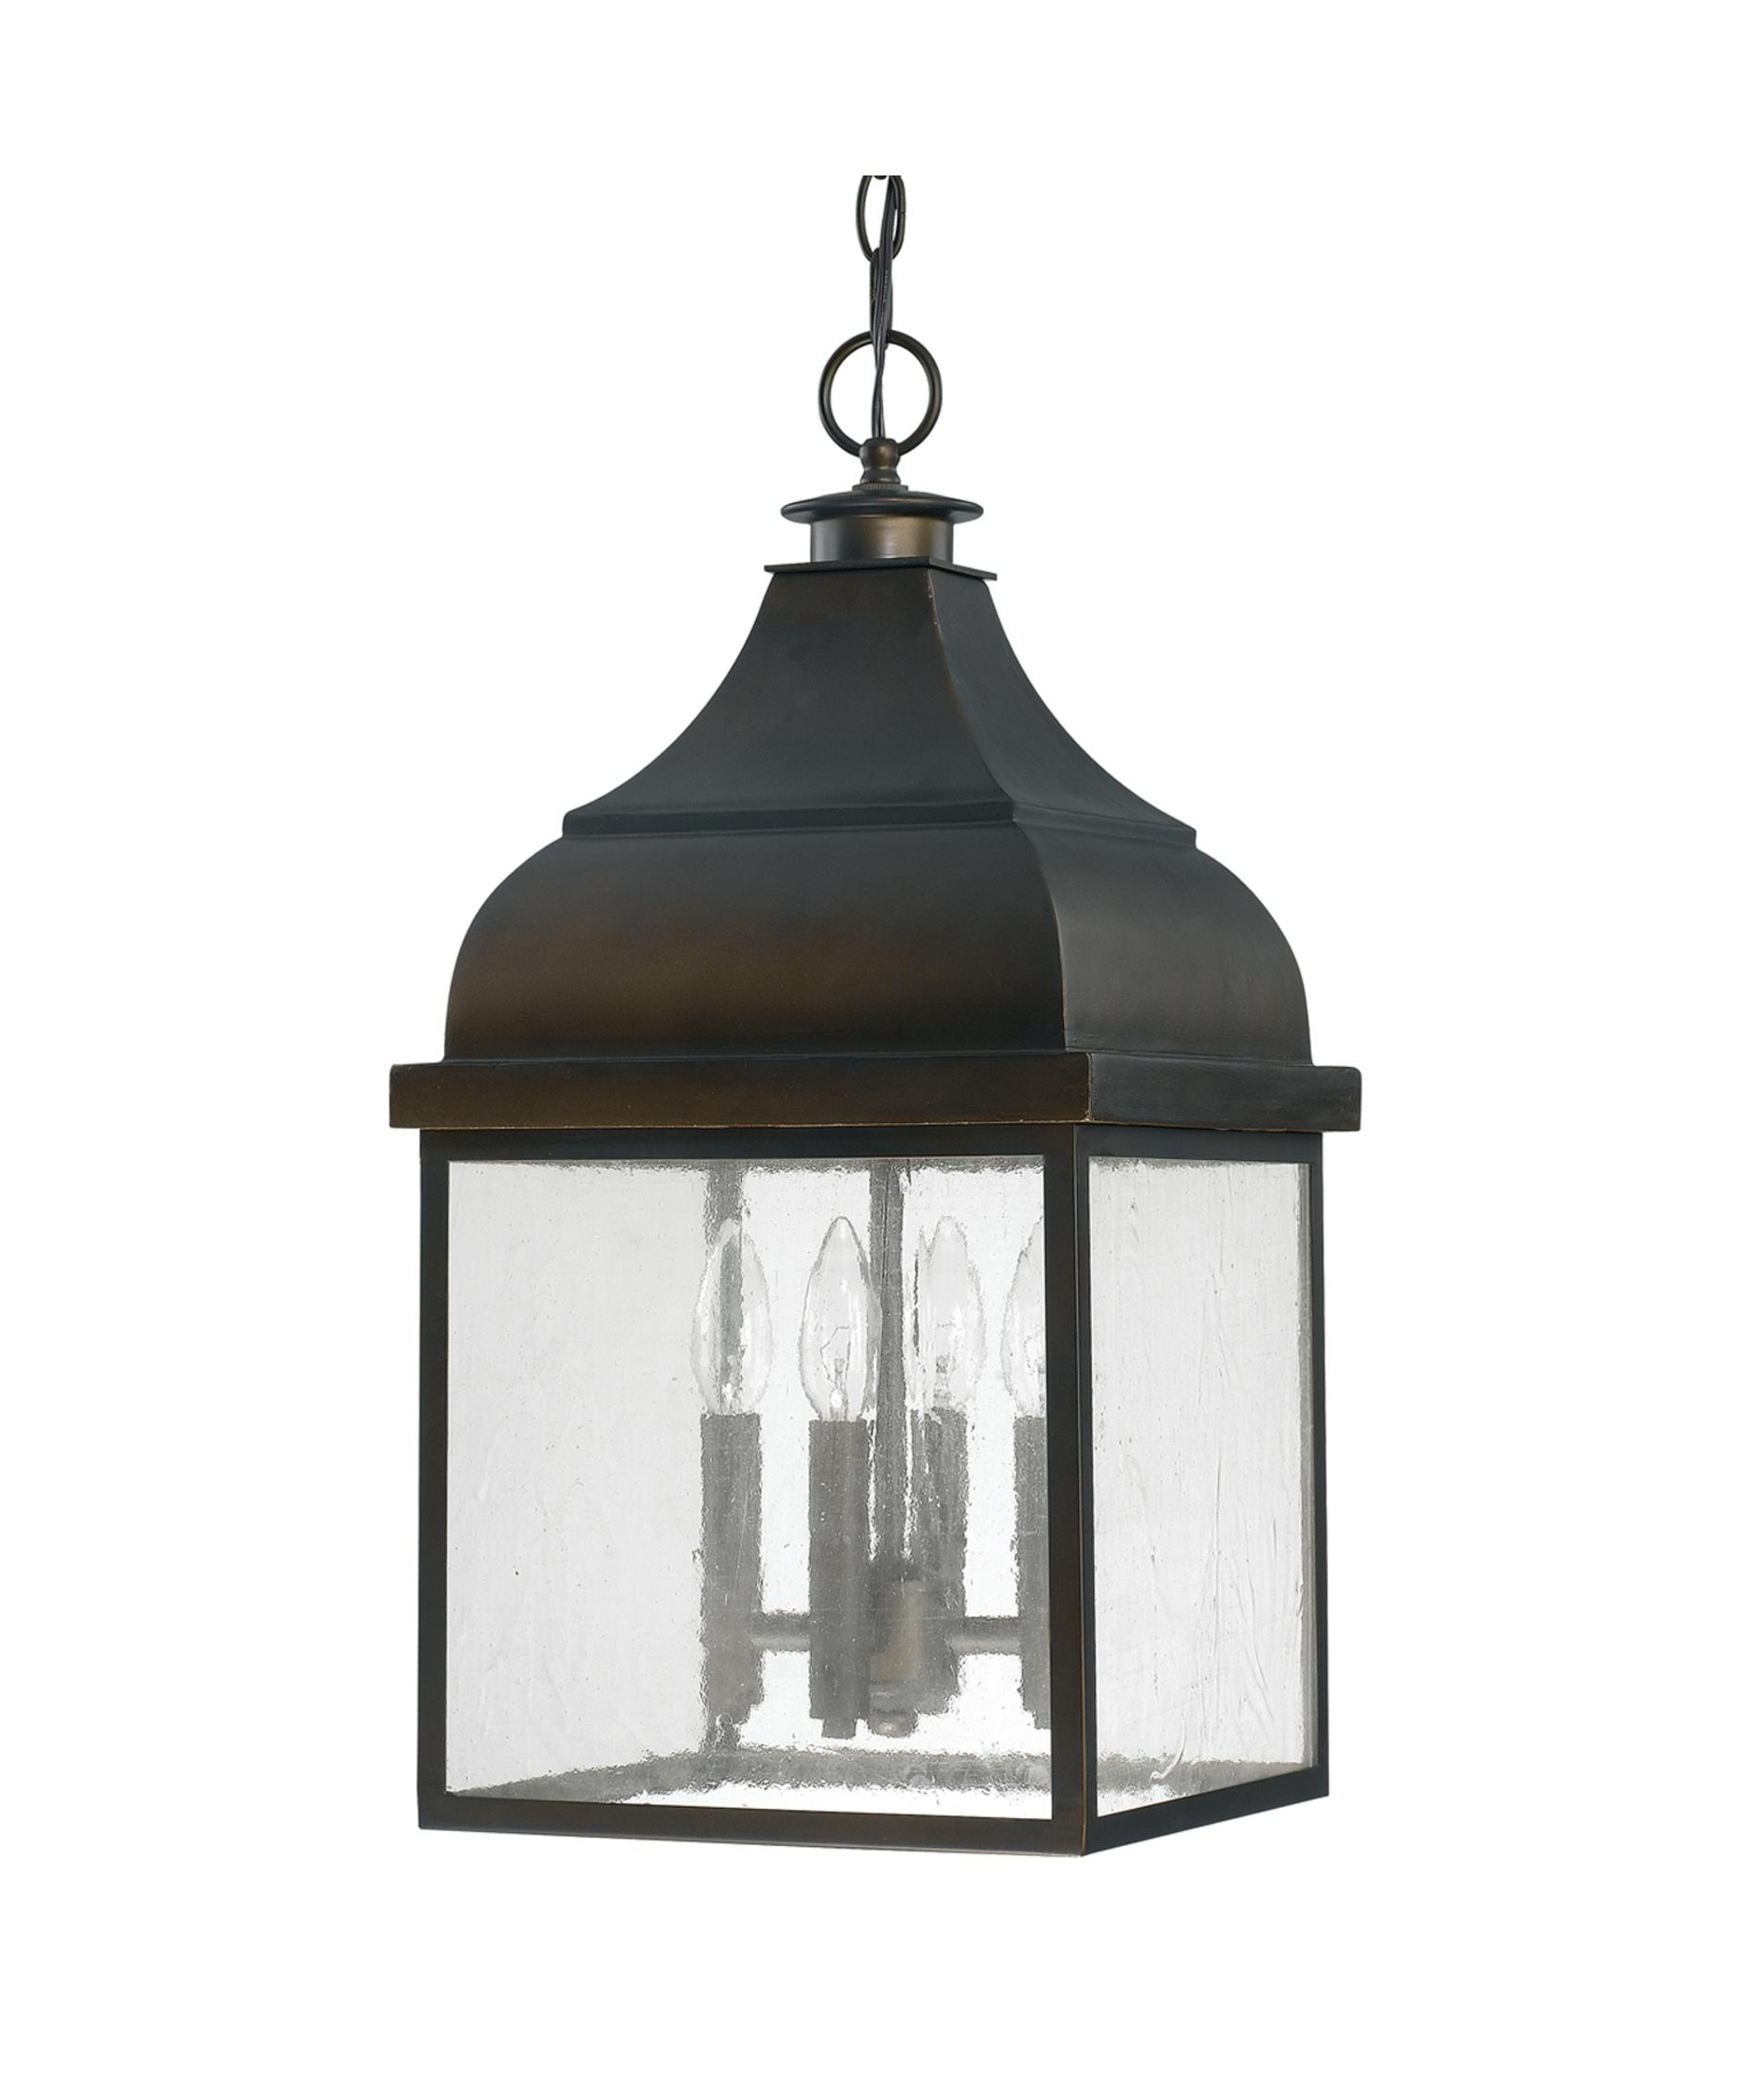 Outdoor Ceiling Lights: Hanging, Flush Mount Lights Intended For Famous Outdoor Hanging Lanterns With Stand (View 10 of 20)